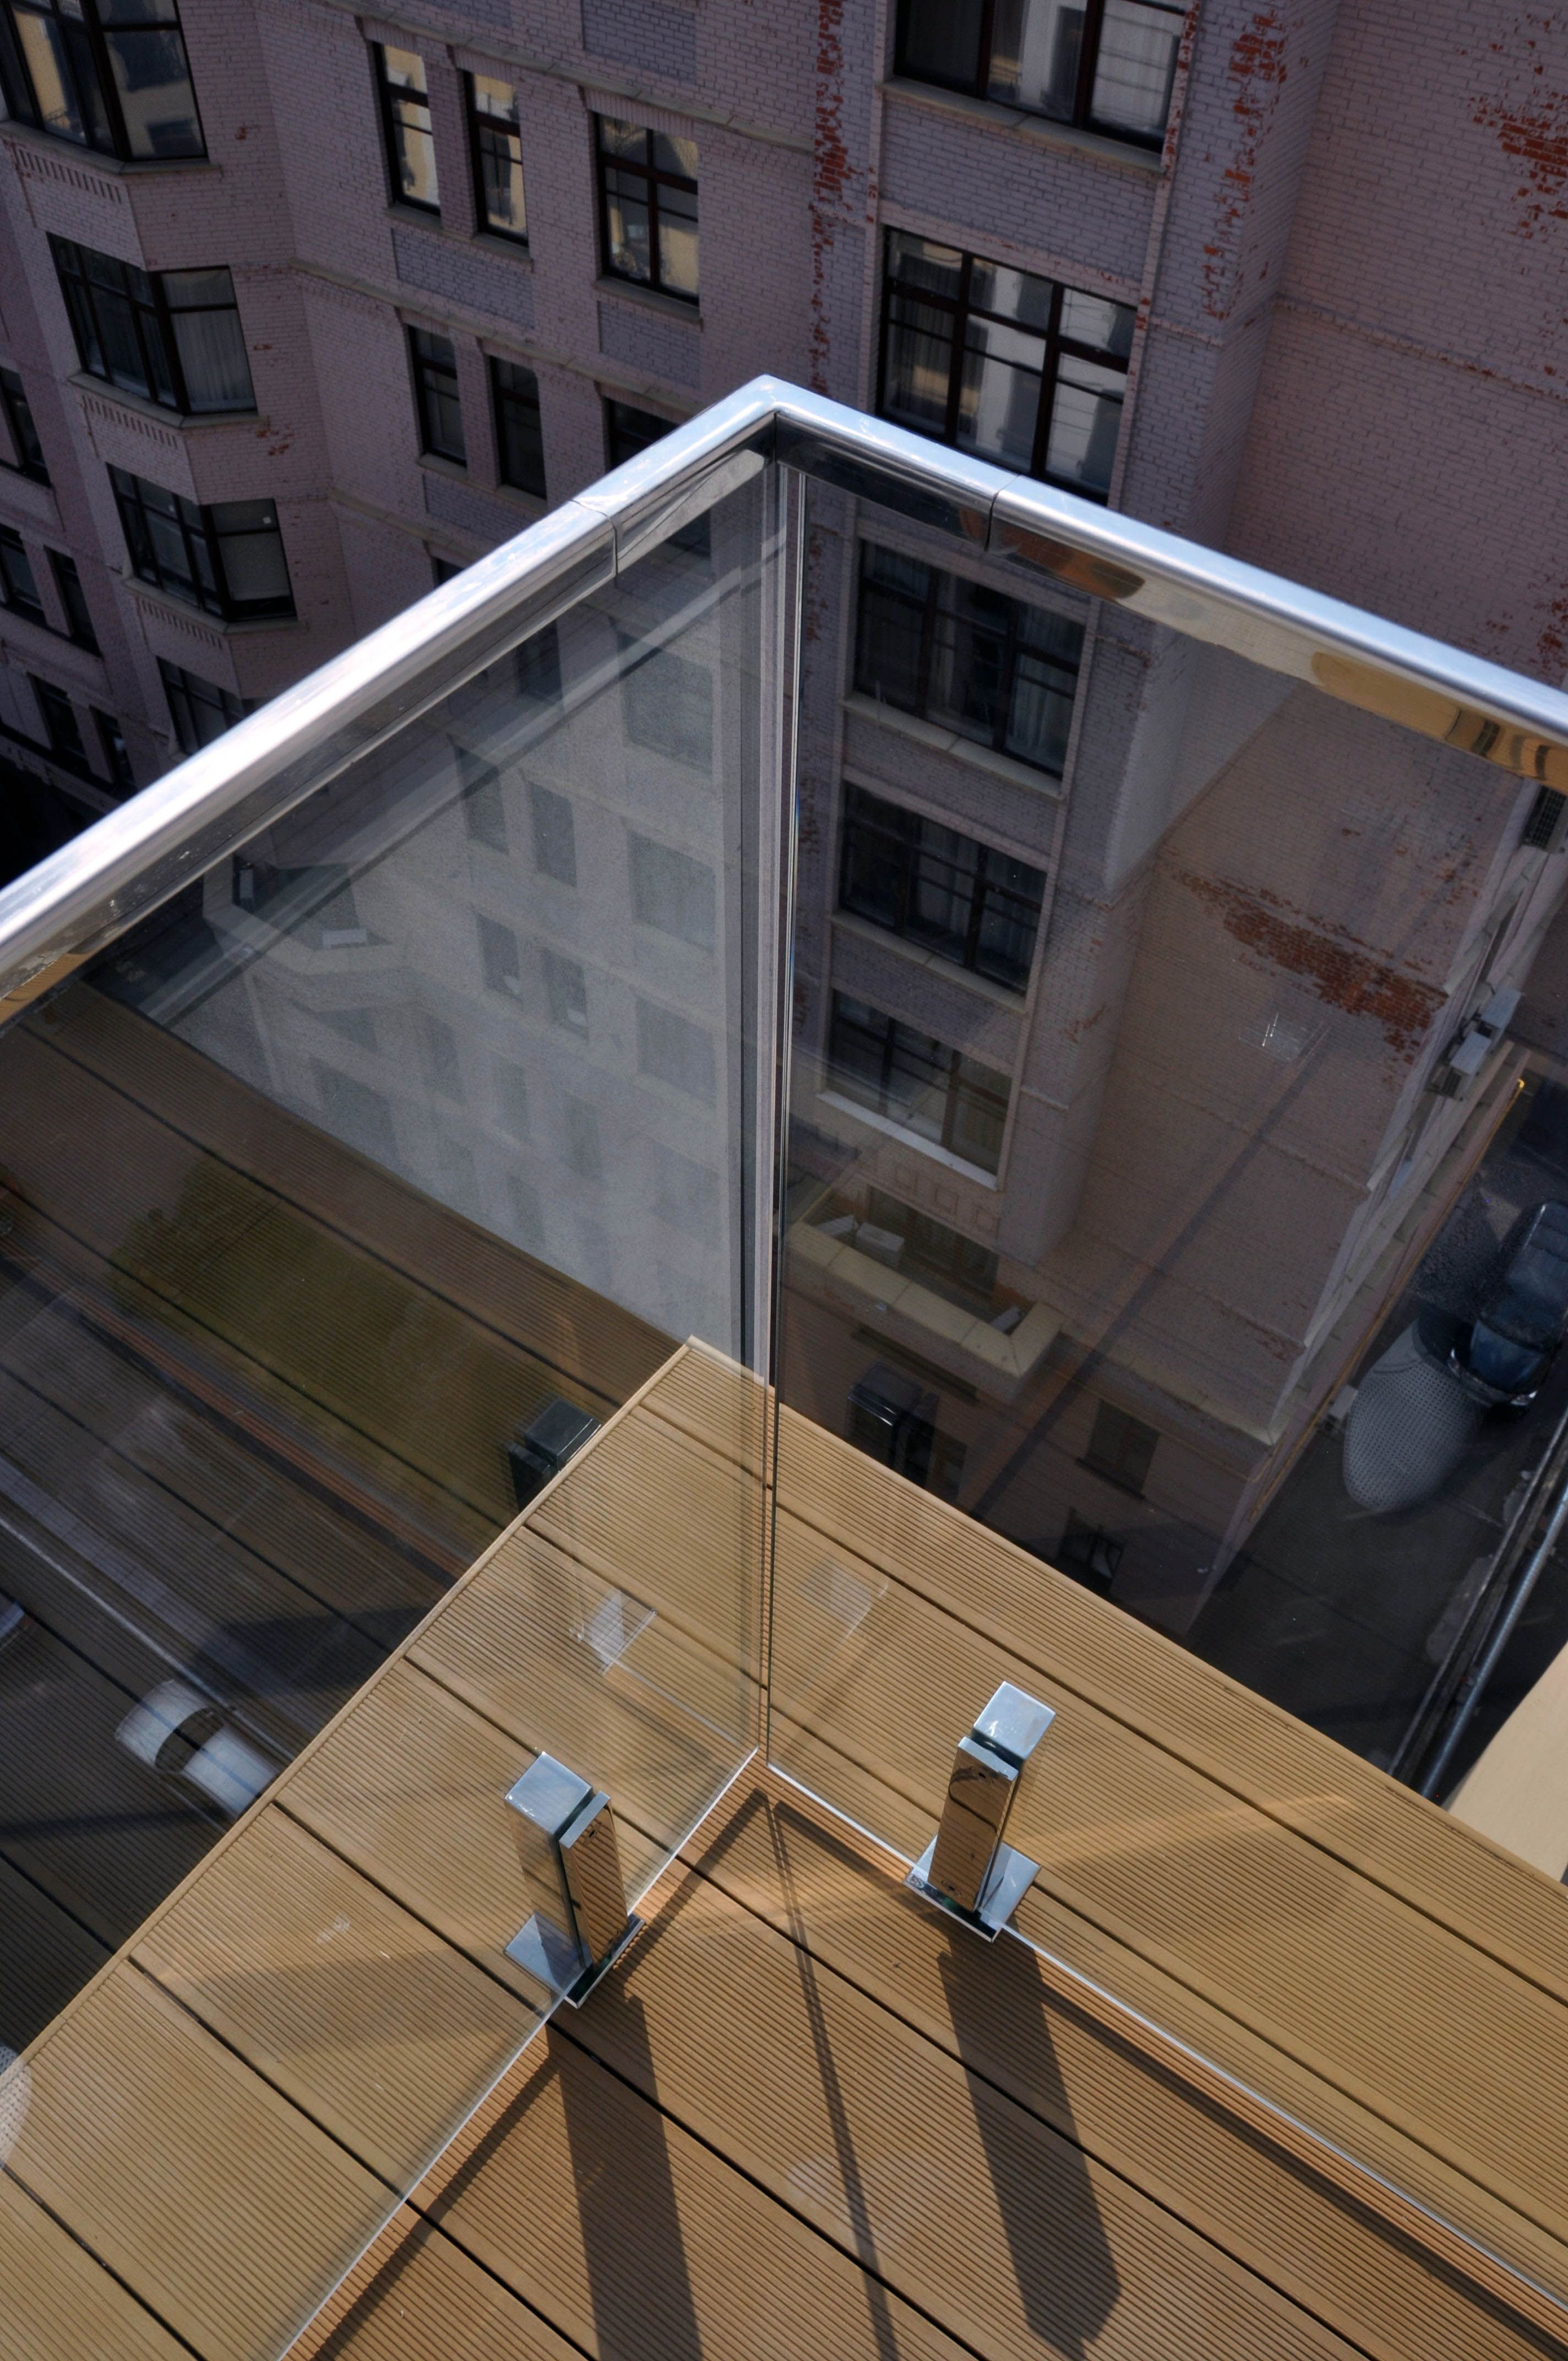 Glass Railing System Glass Balcony Glass Railing: Remarkable Glass Railing Photo Gallery For Your Home